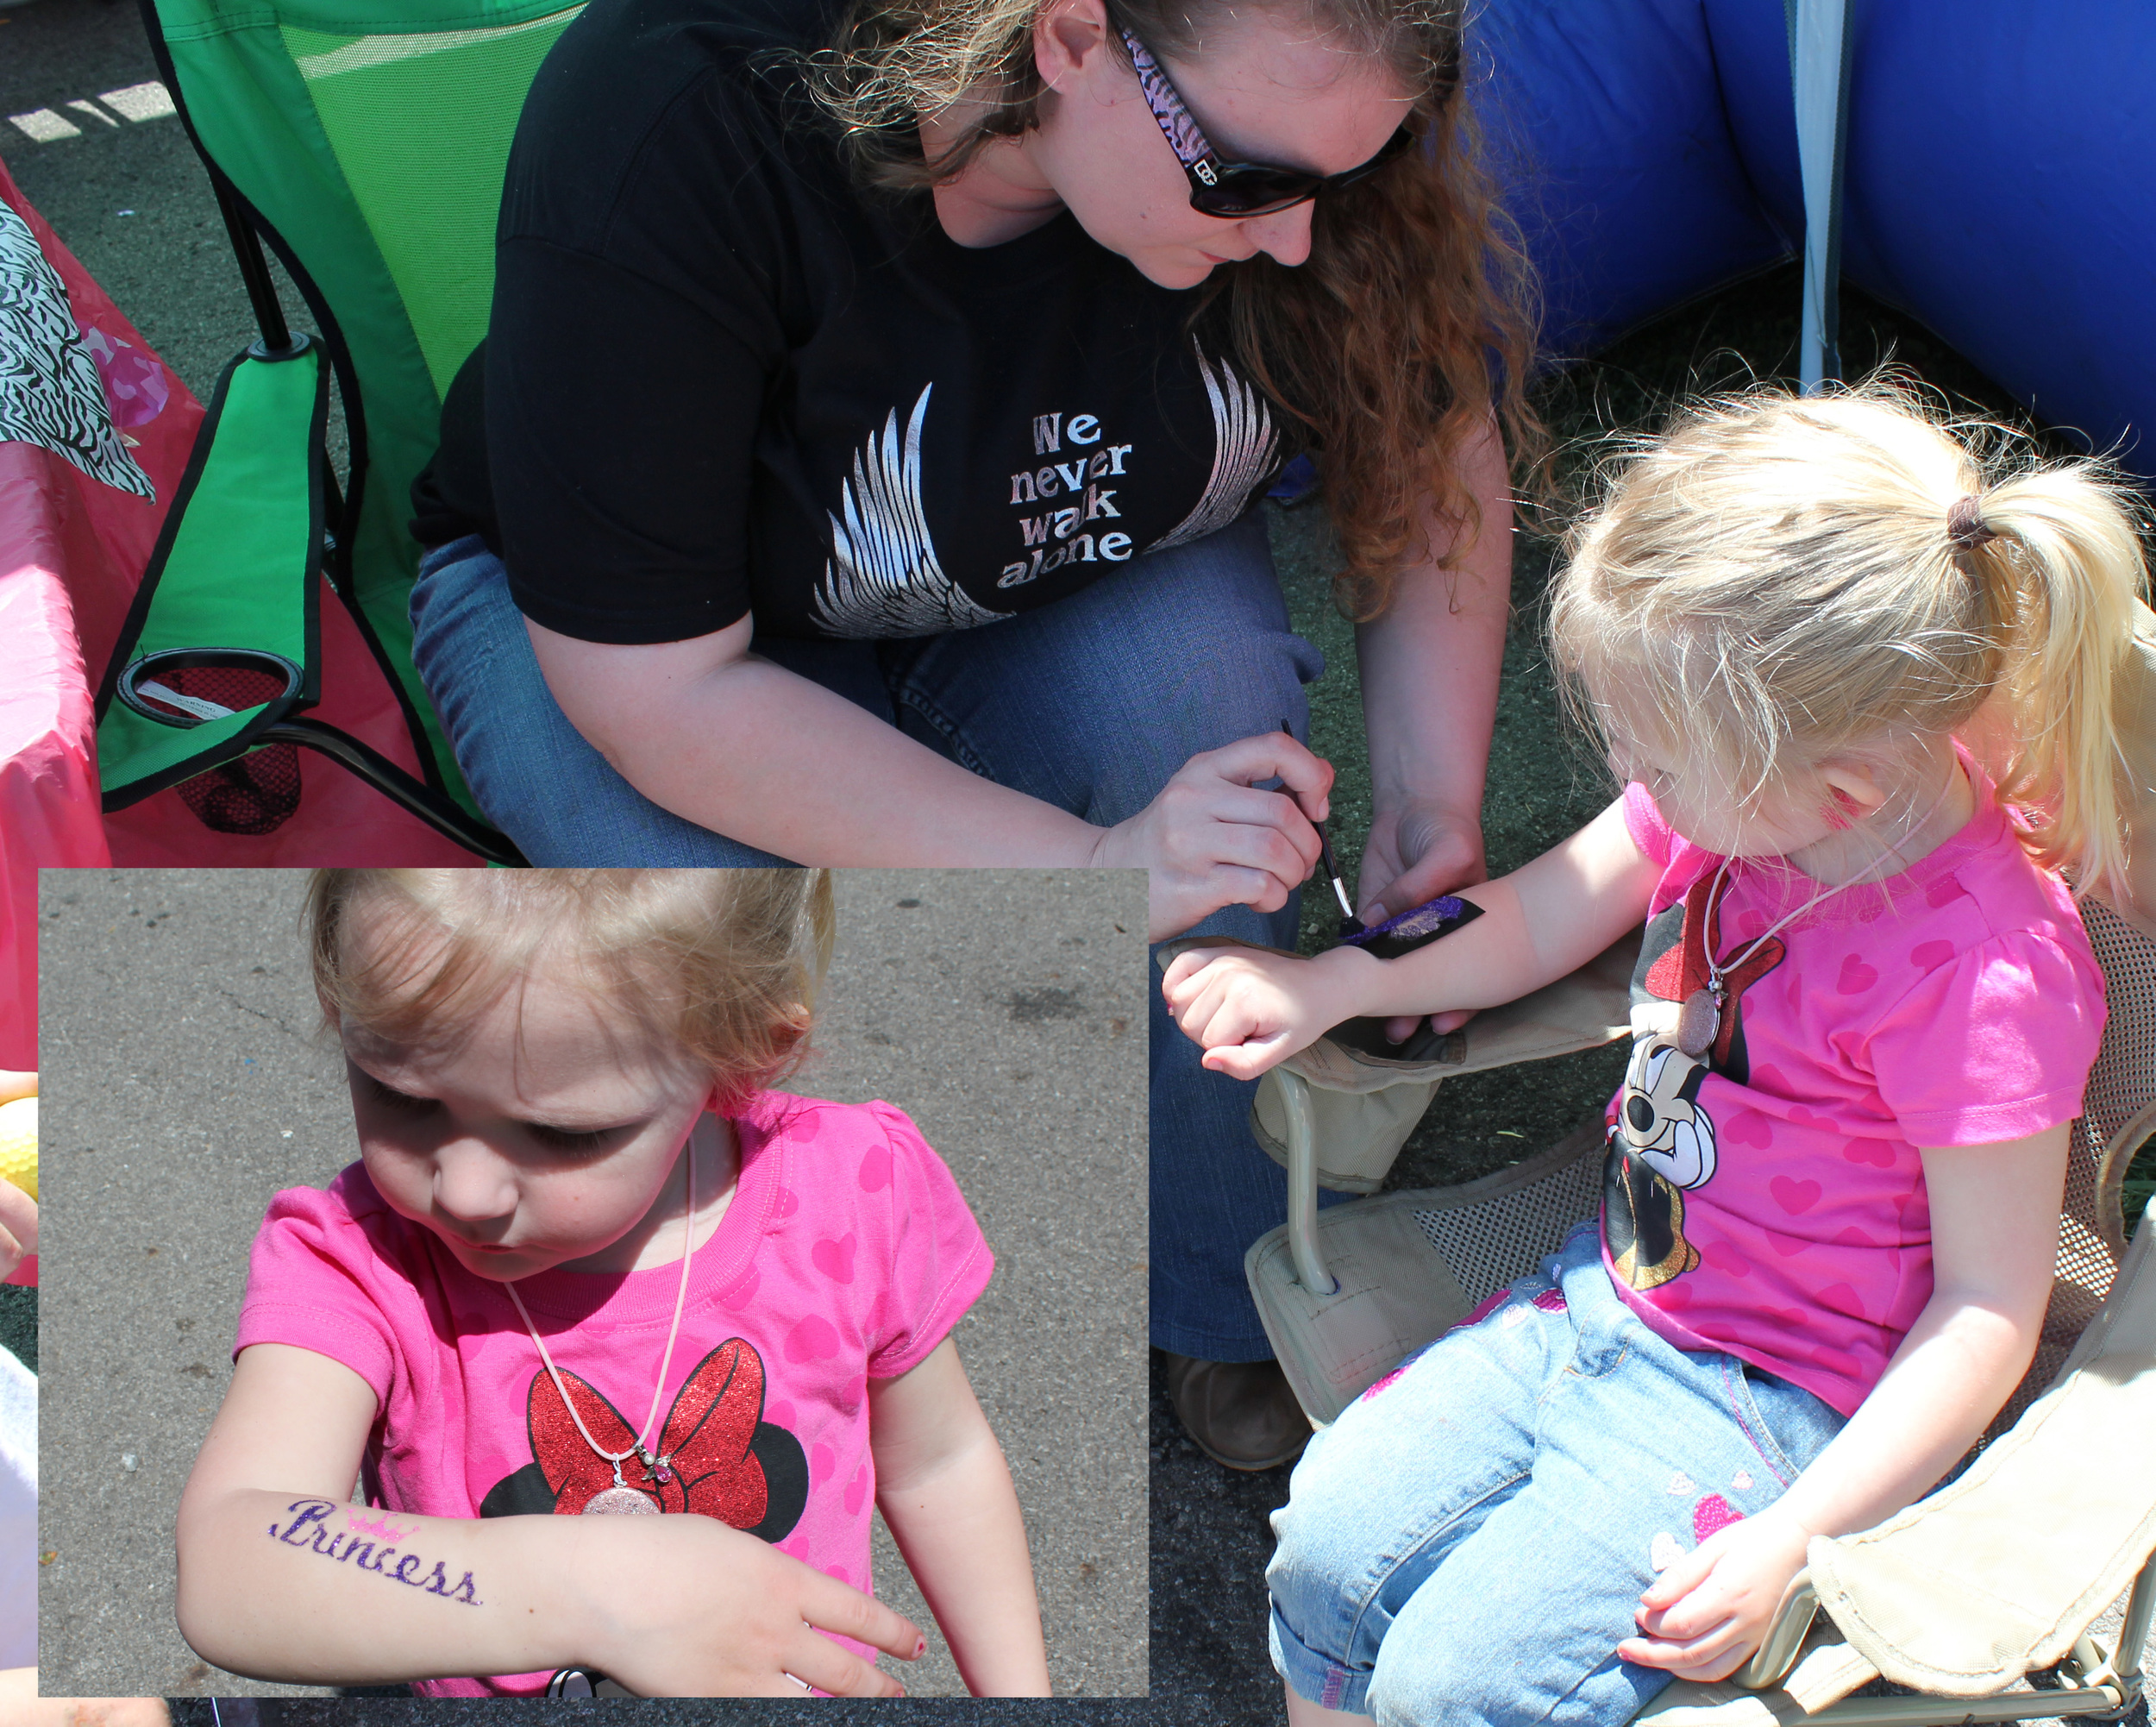 A glitter tattoo tops off this young lady's day after playing in the bouncy room.